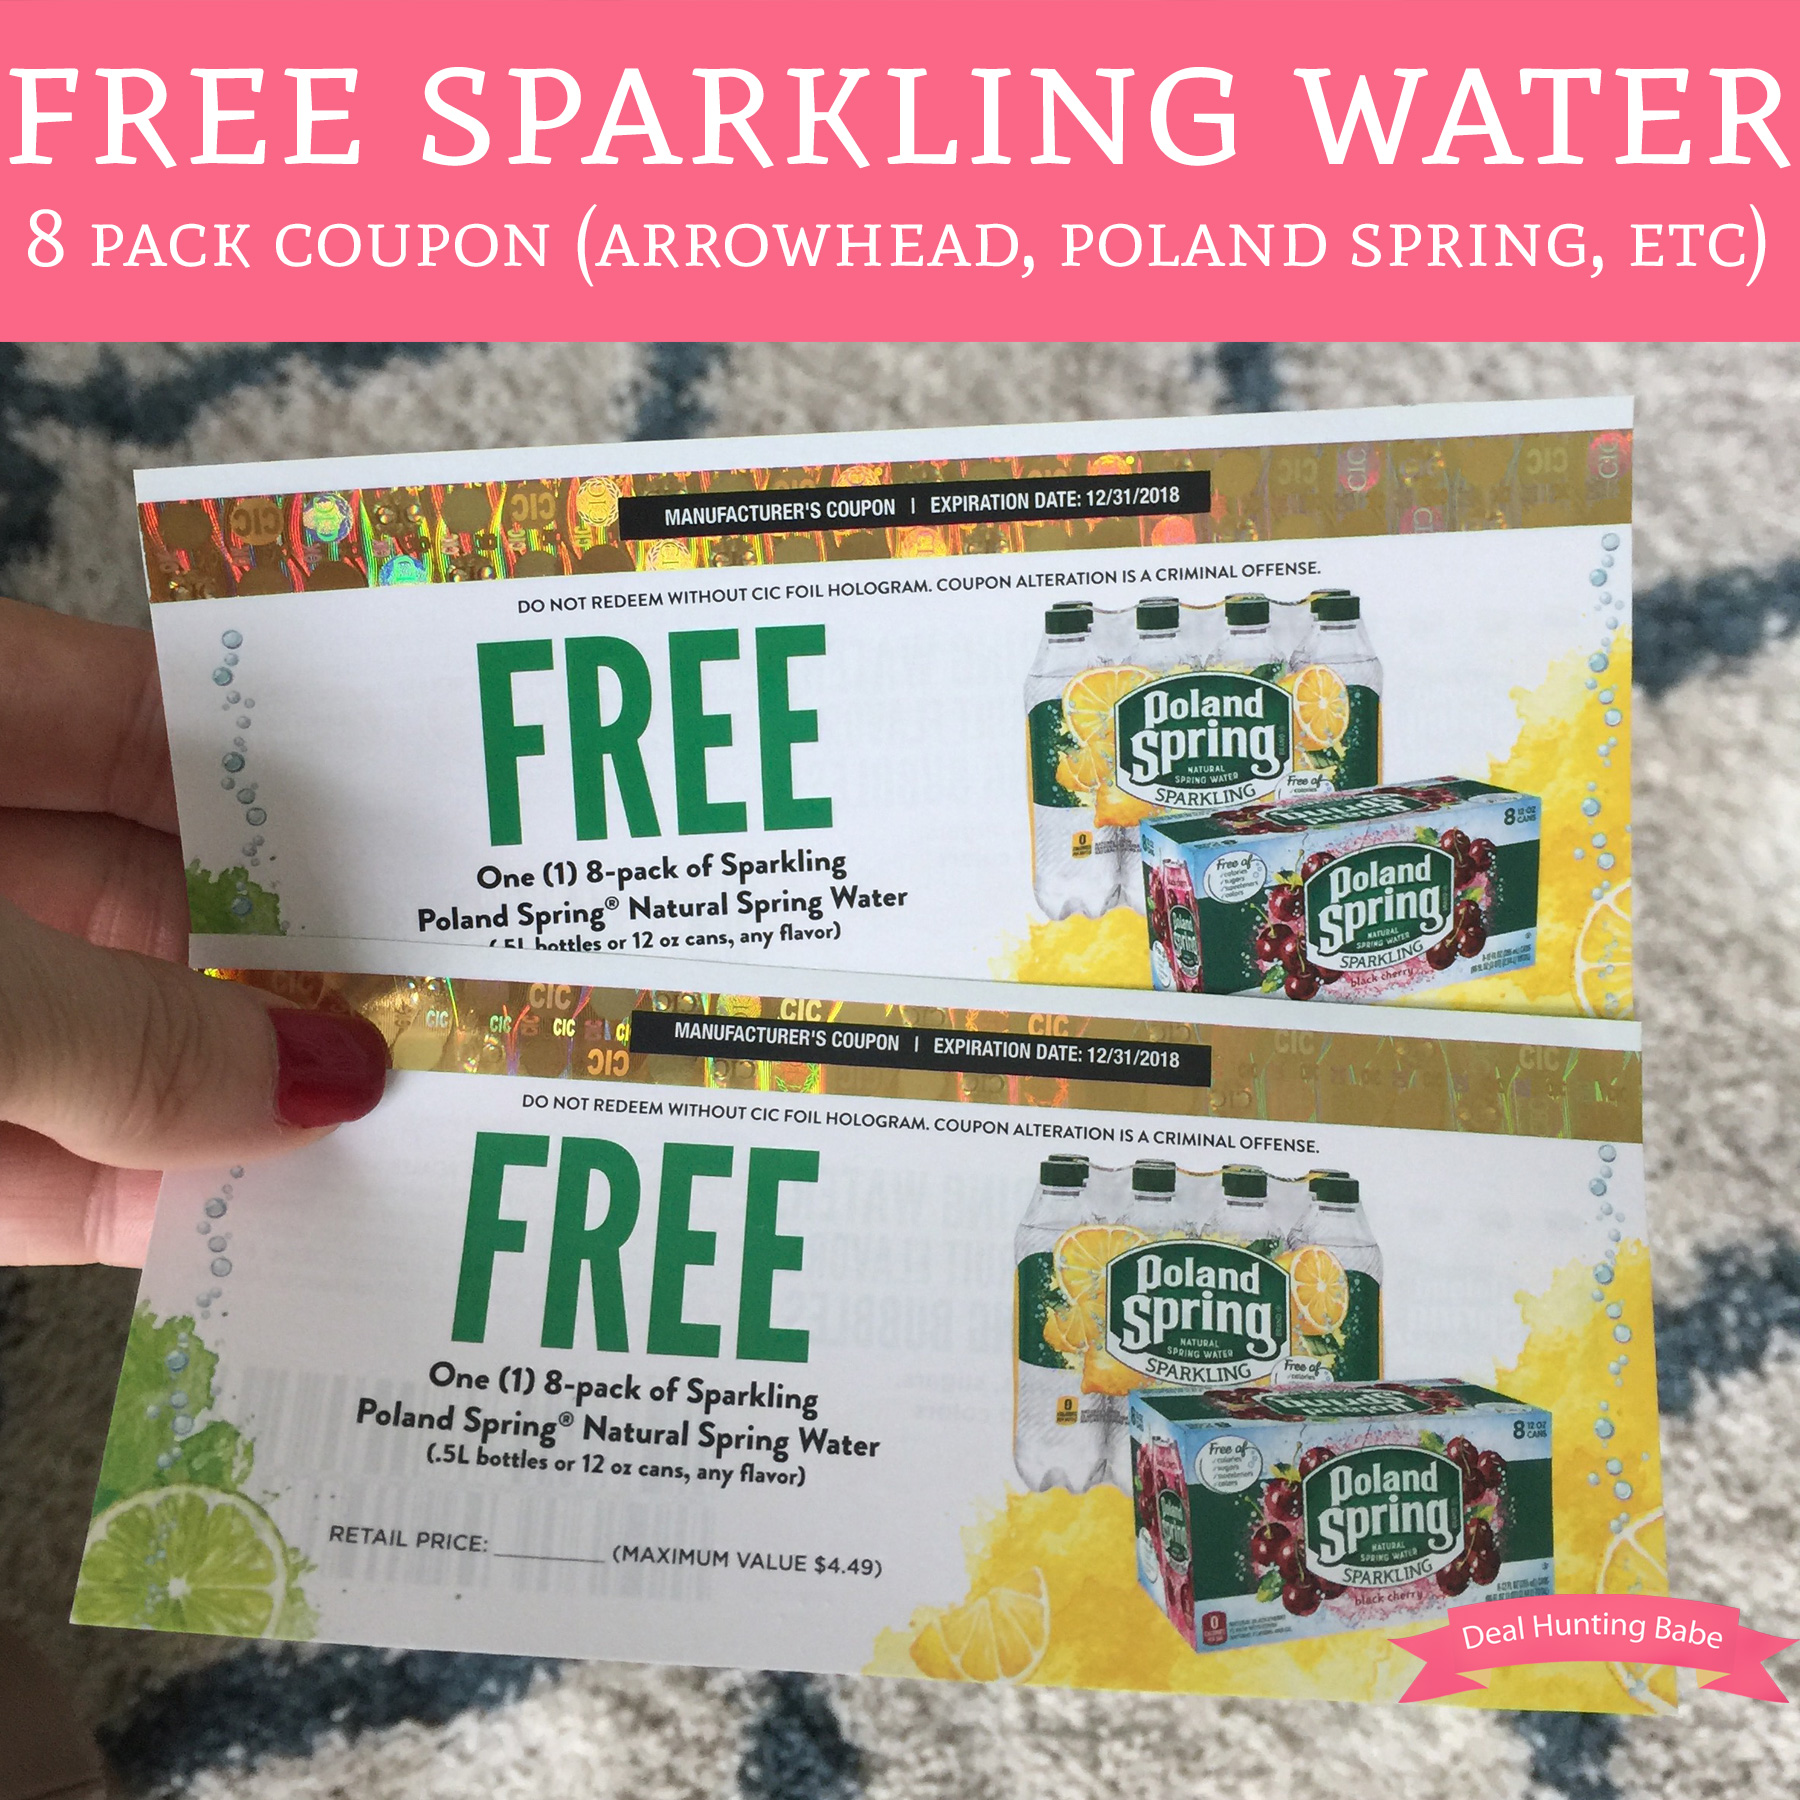 free sparkling water 8 pack coupon  arrowhead  poland